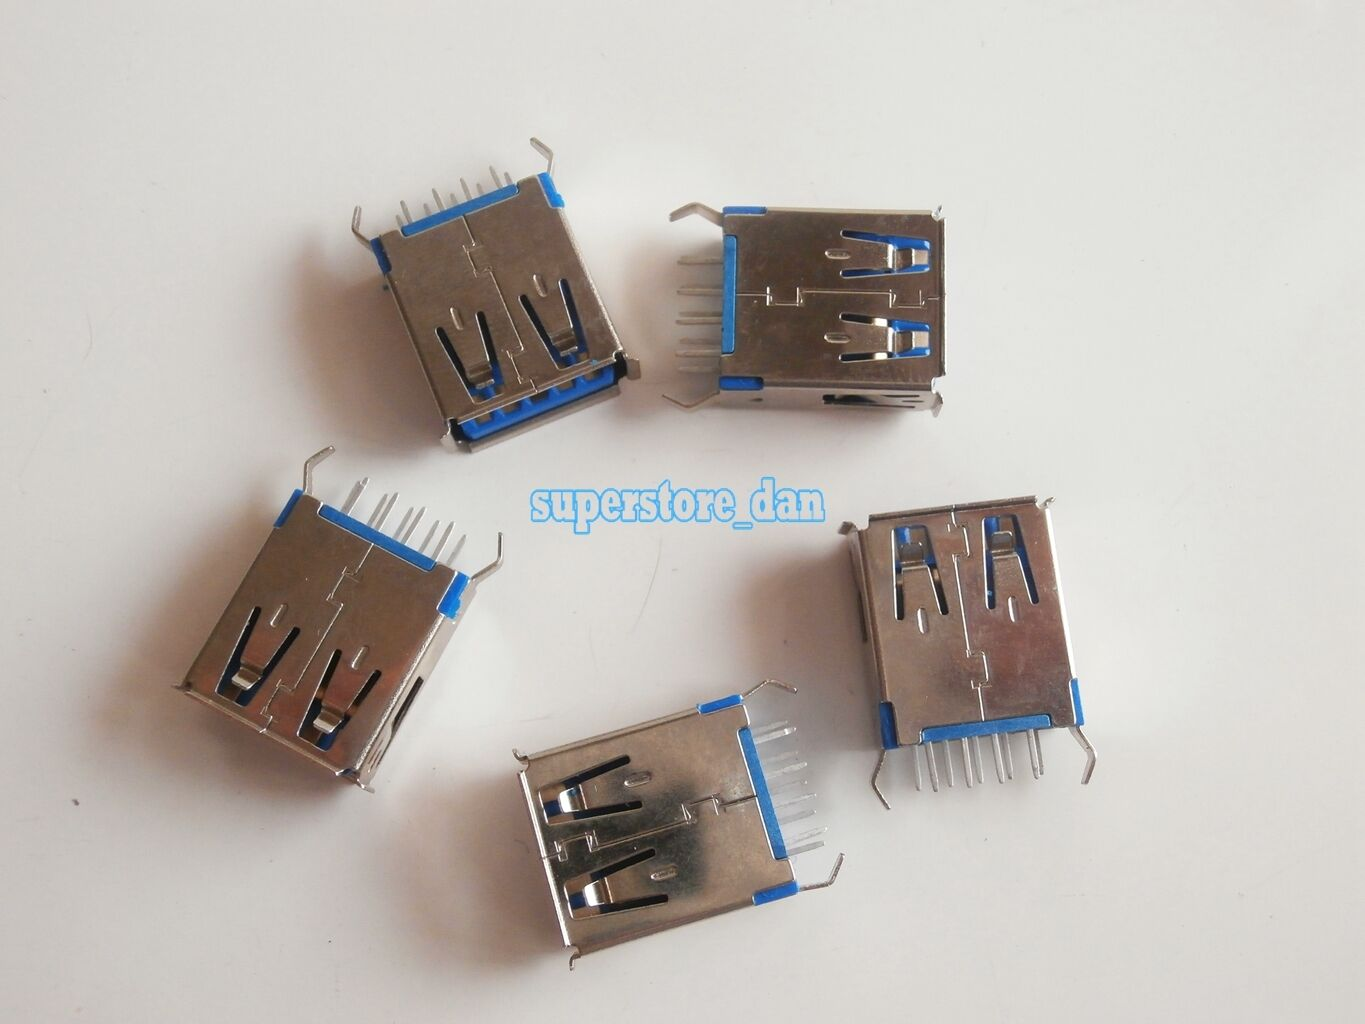 5X USB 3.0 Female Type-A 9 Pin 180° SMT SMD DIP USB Connector 2 Legs